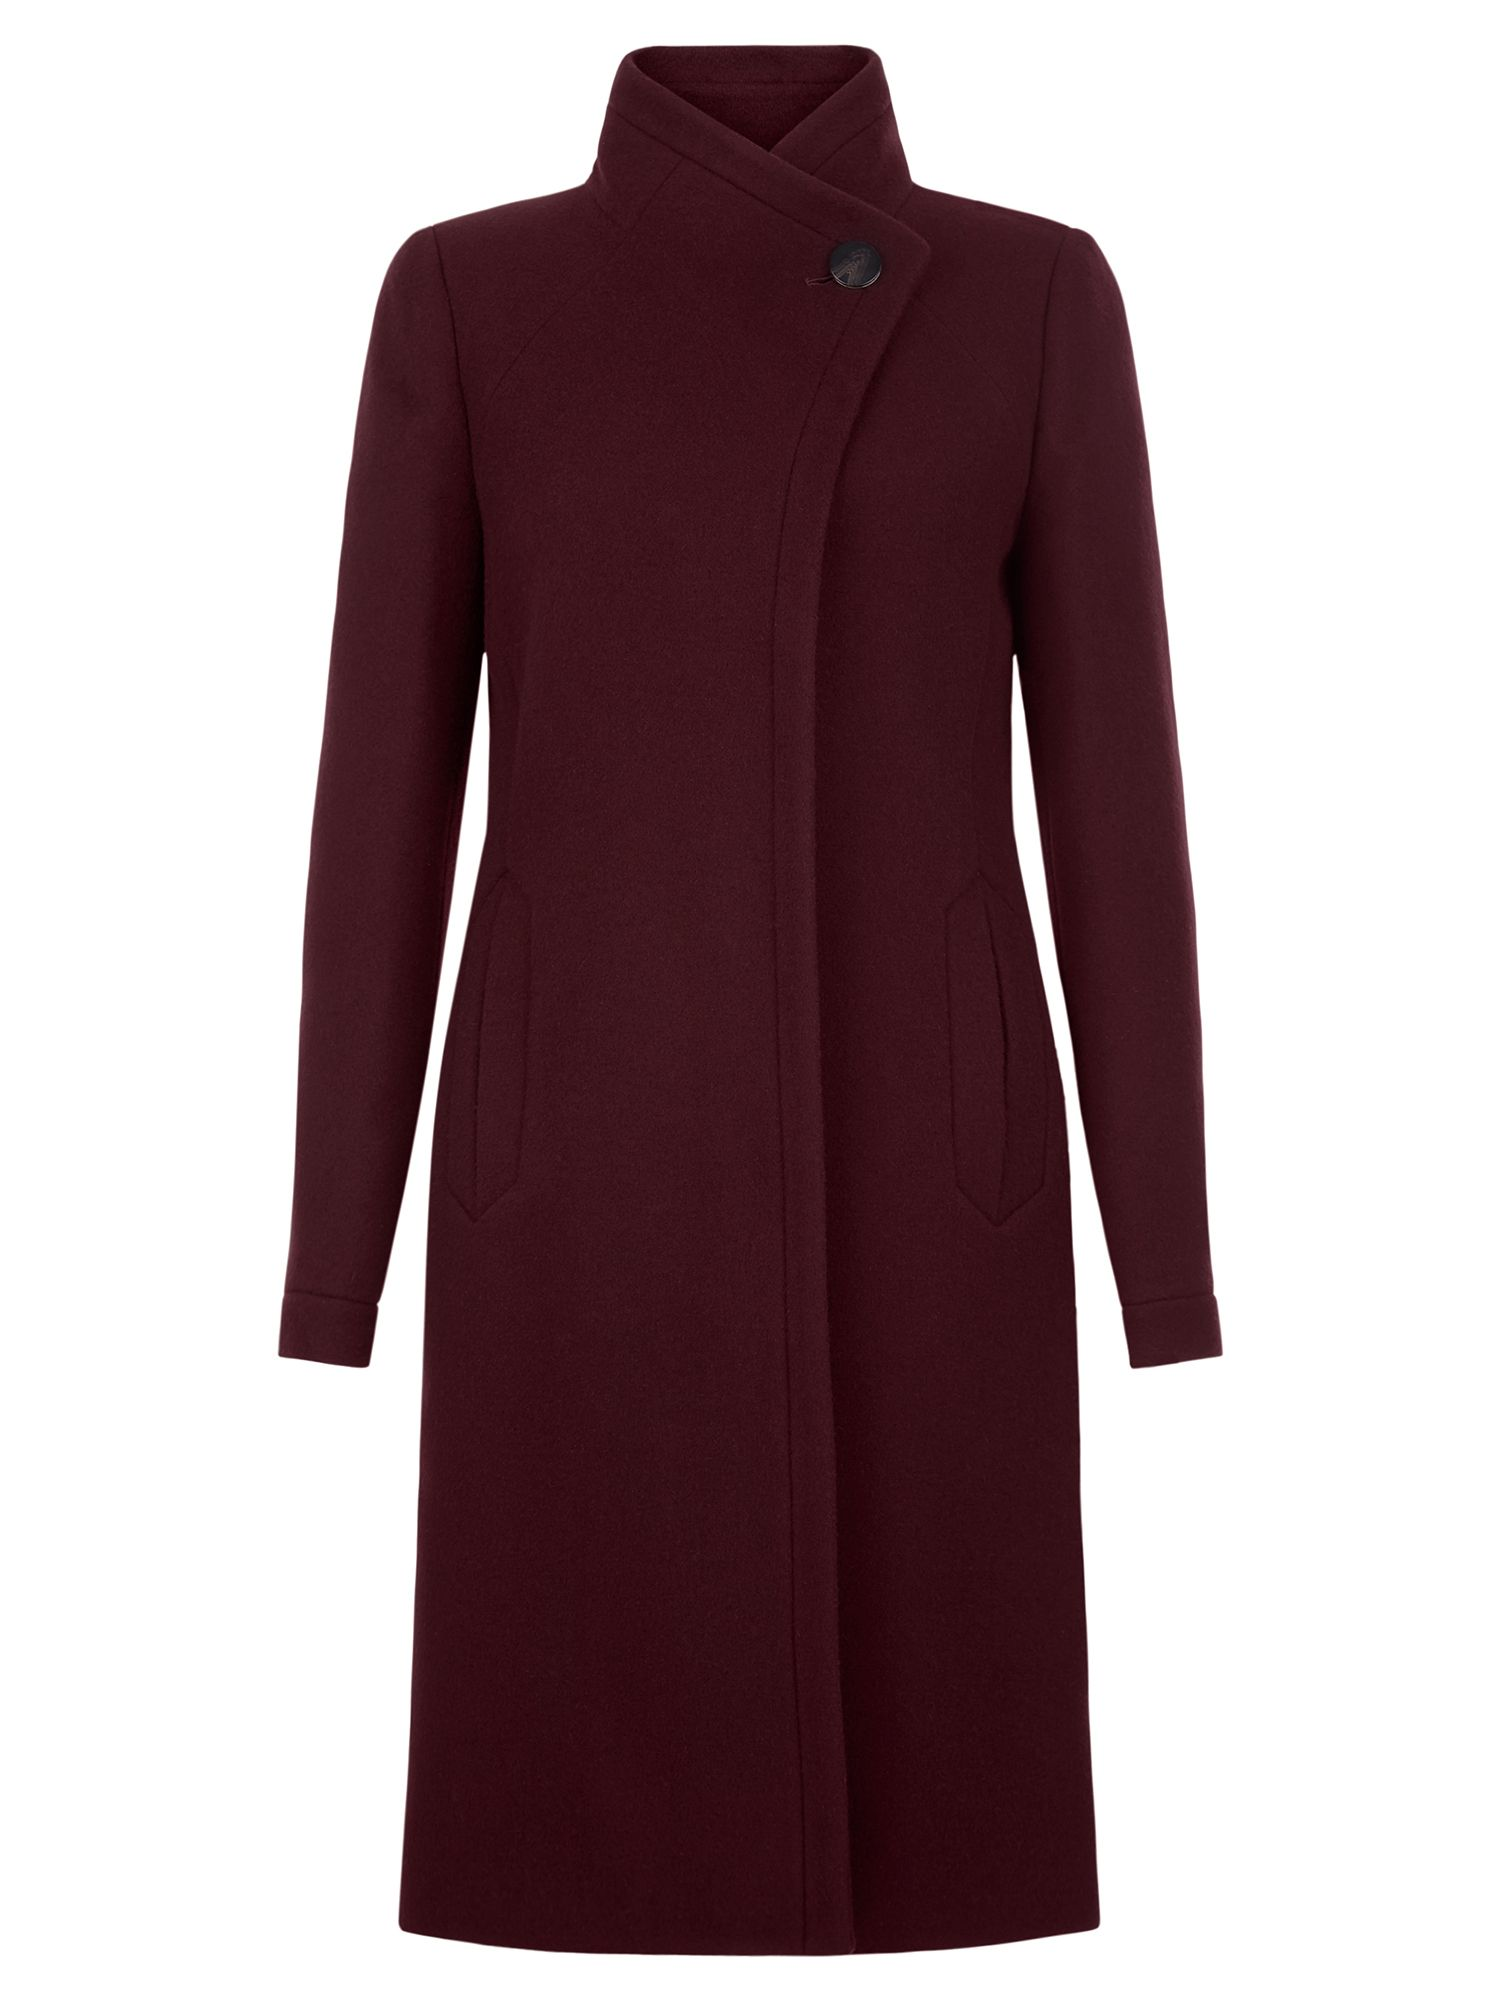 Hobbs Soraya Coat, Red